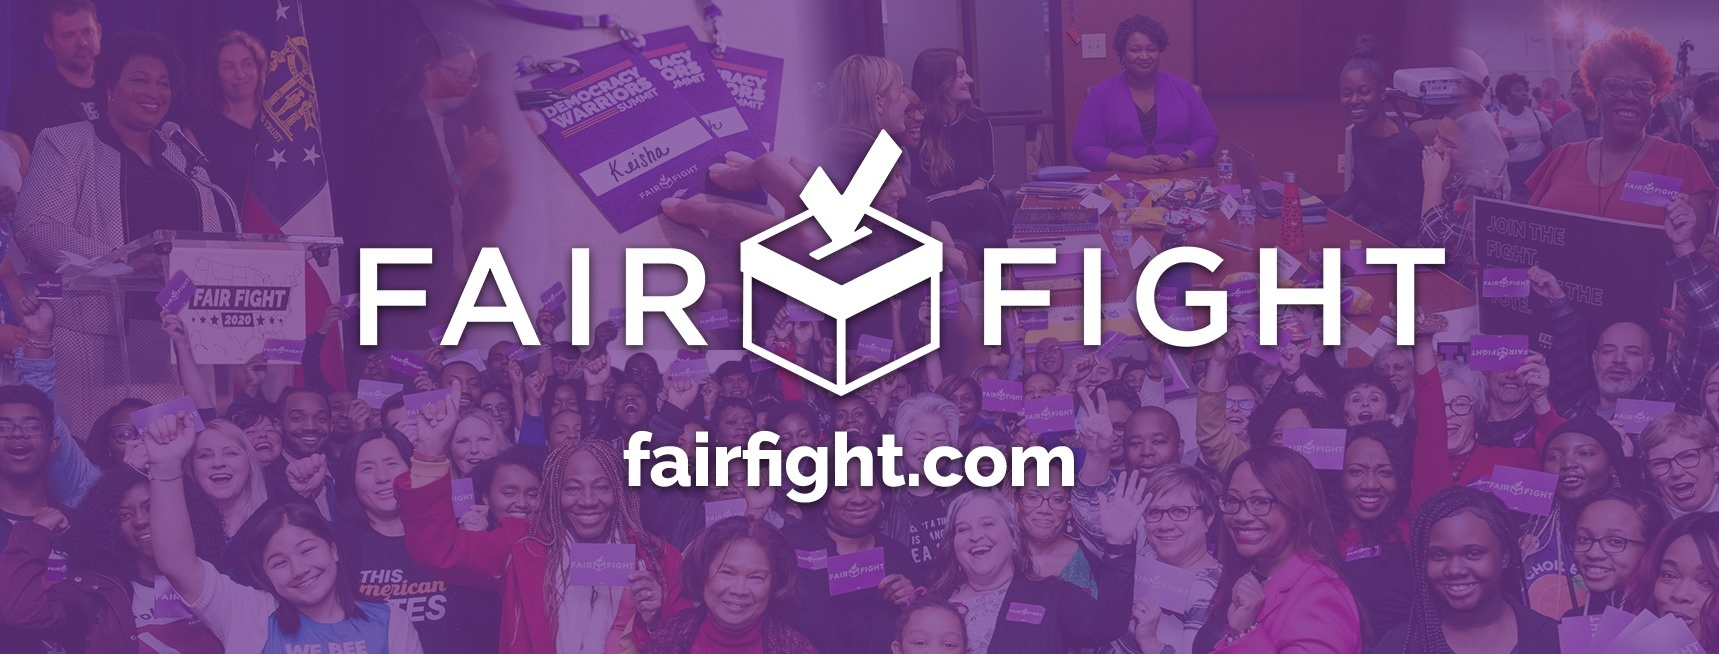 1/22/2021 Foundry Giving Friday: Fair Fight